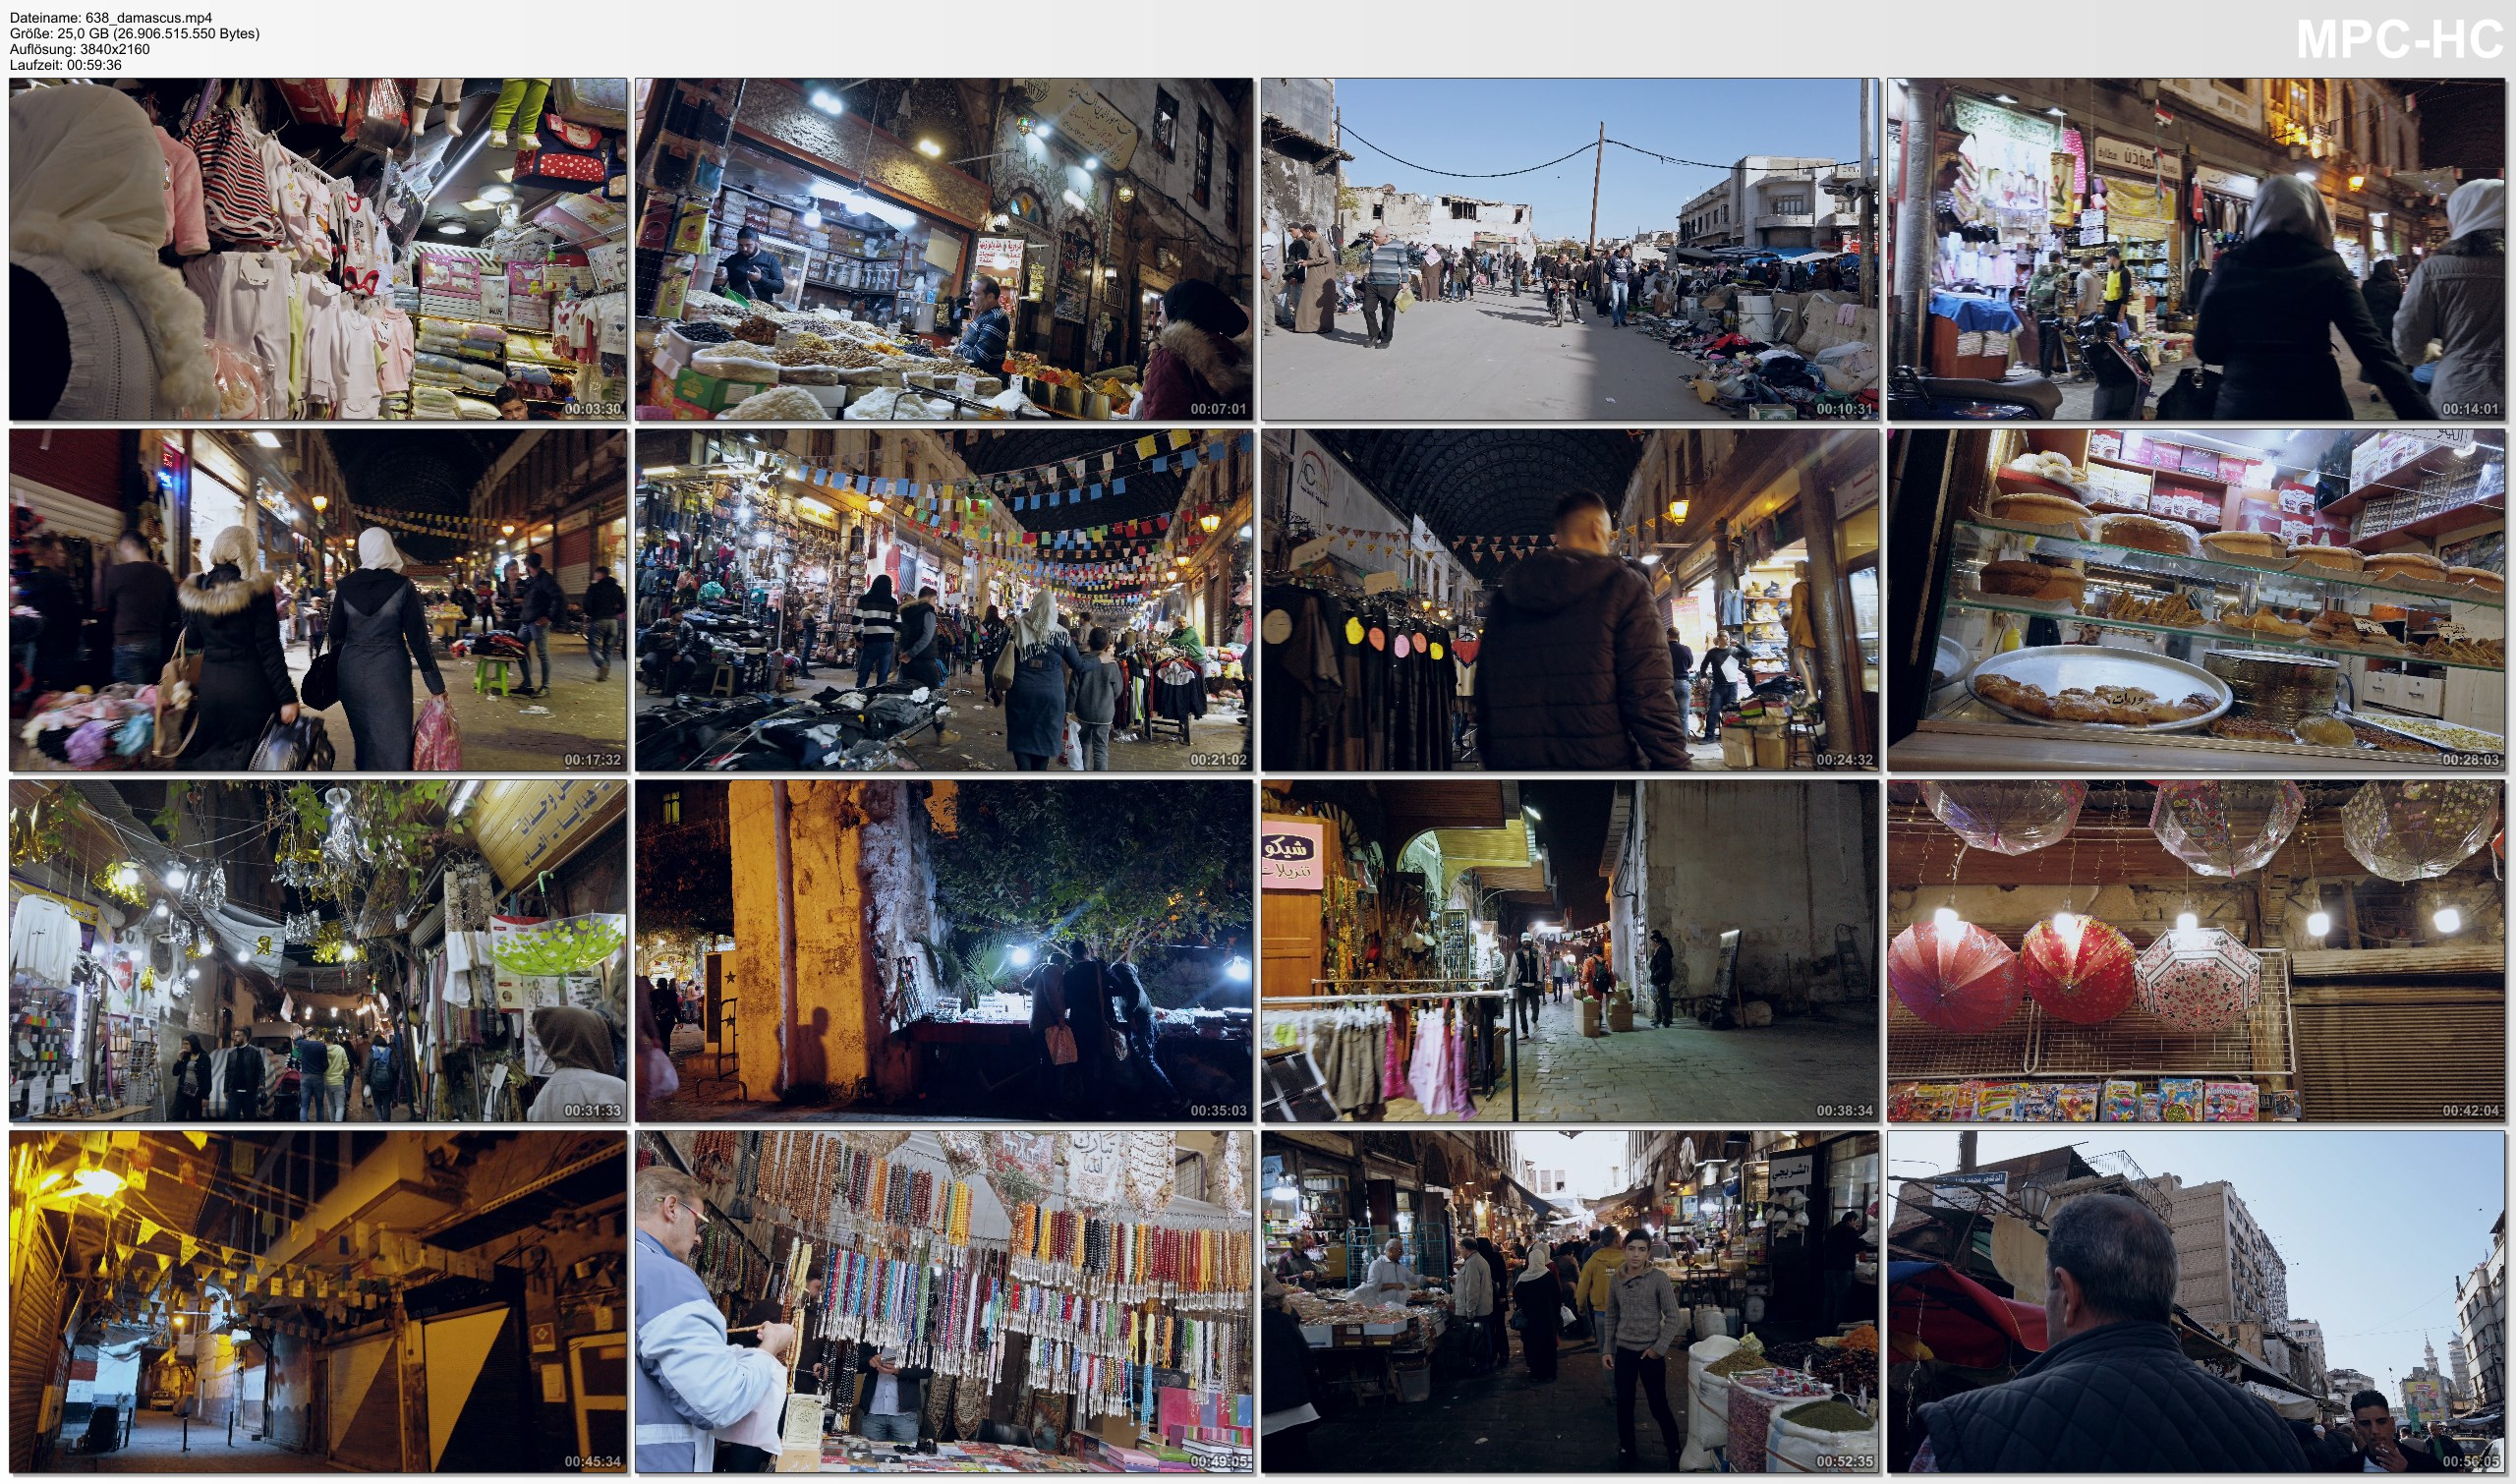 Pictures from Video 【4K】Virtual Walking Tour | Damascus - SYRIA 2020 | Al-Hamidiyah Souq Market with Street Sounds دمشق